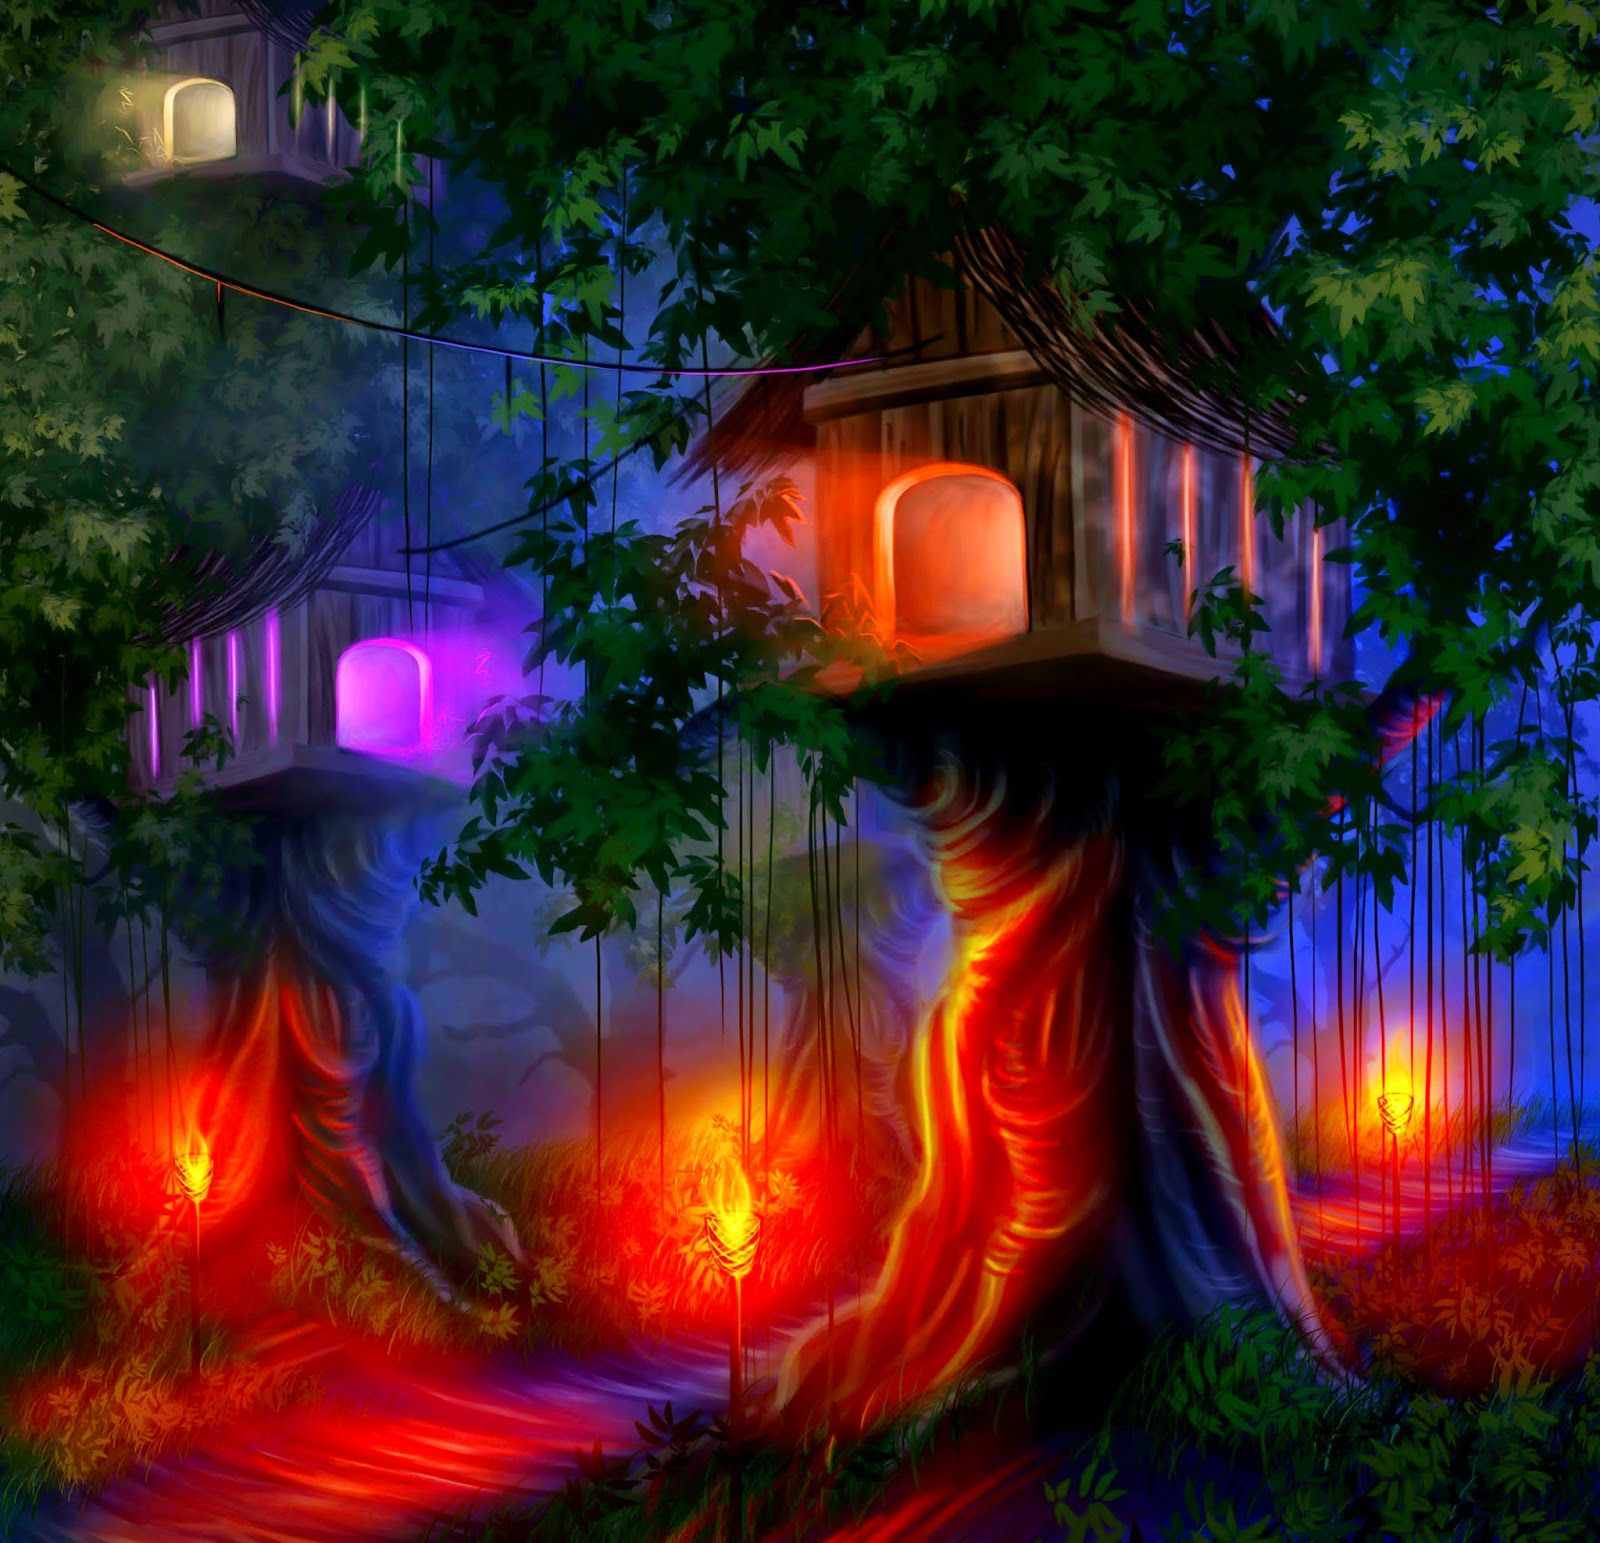 Wallpaper House Beautiful: Beautiful Tree House Fantasy Fairy Tale Images Pictures HD